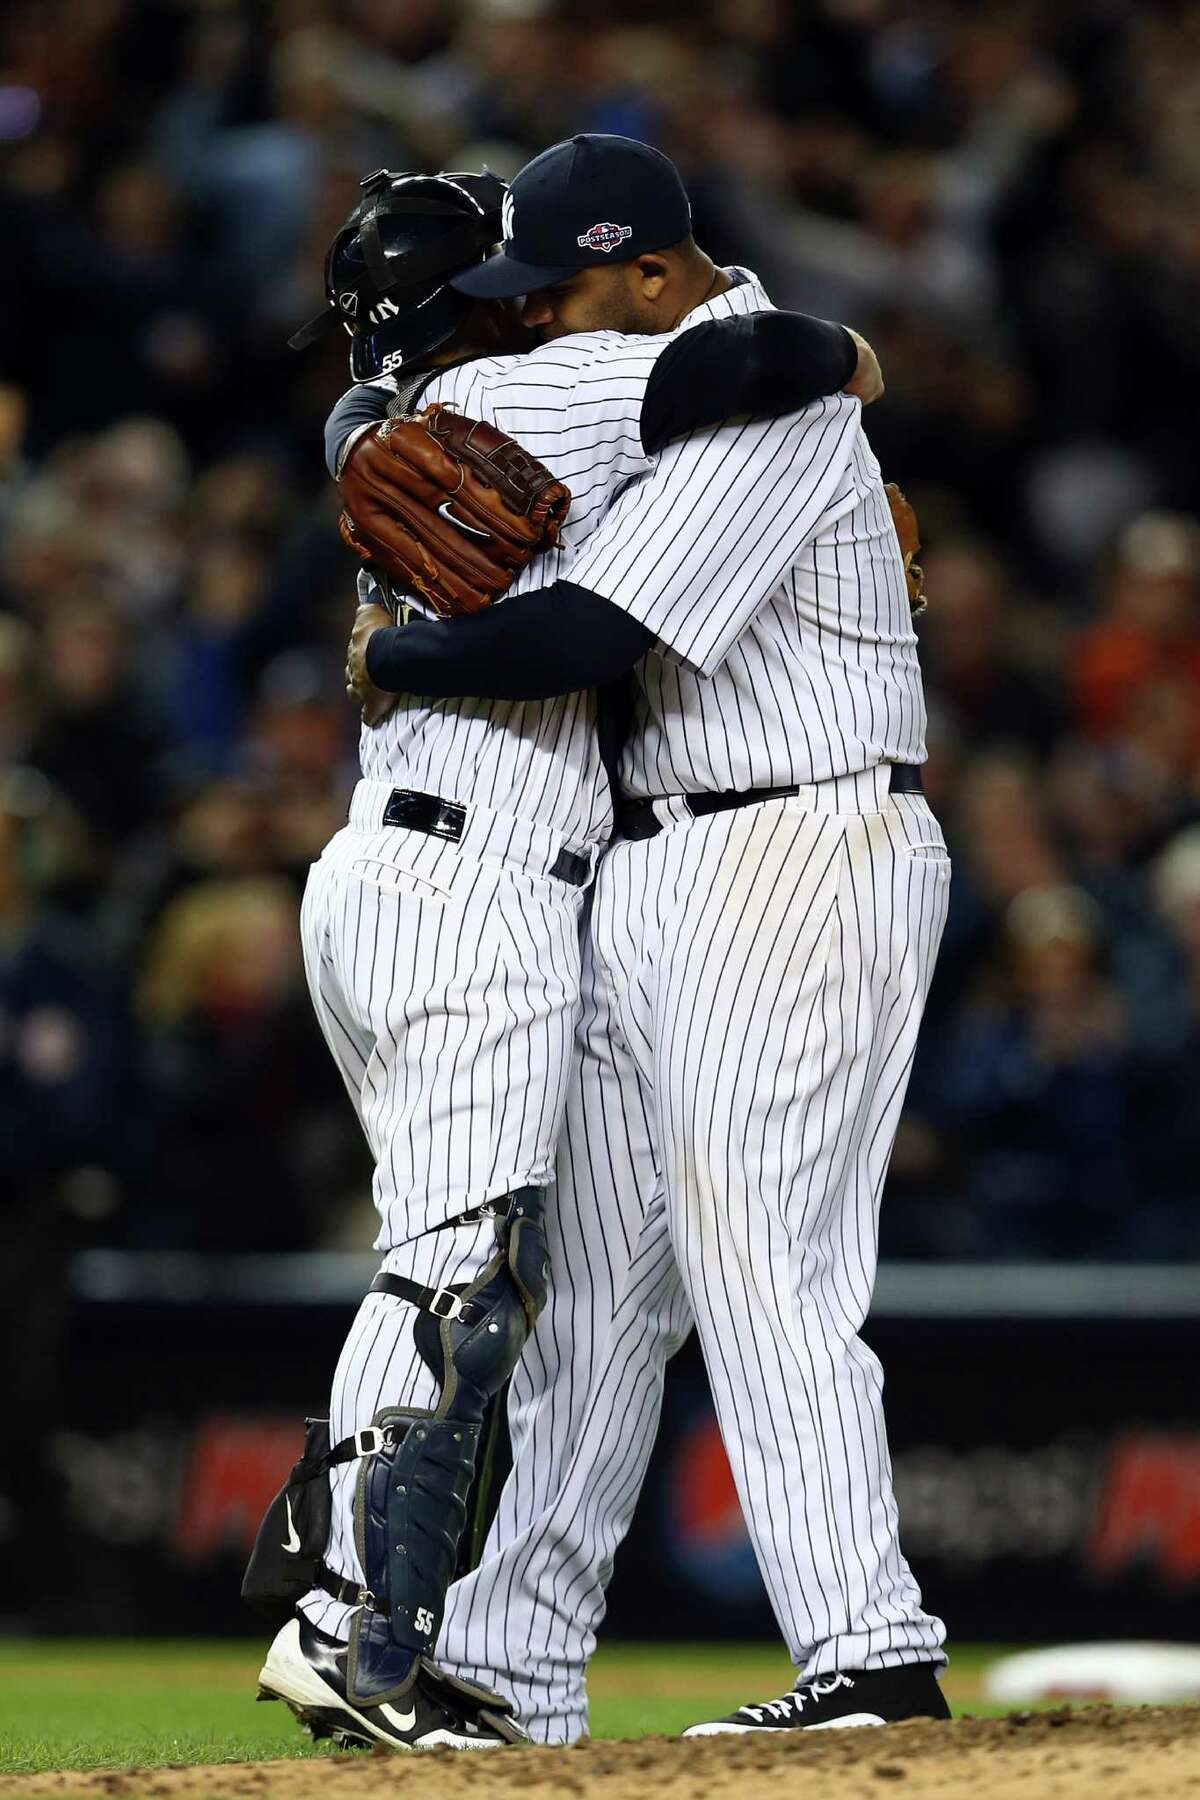 NEW YORK, NY - OCTOBER 12: CC Sabathia #52 and Russell Martin #55 of the New York Yankees celebrate after defeating the Baltimore Orioles by a score of 3-1 to win Game Five of the American League Division Series at Yankee Stadium on October 12, 2012 in New York, New York.